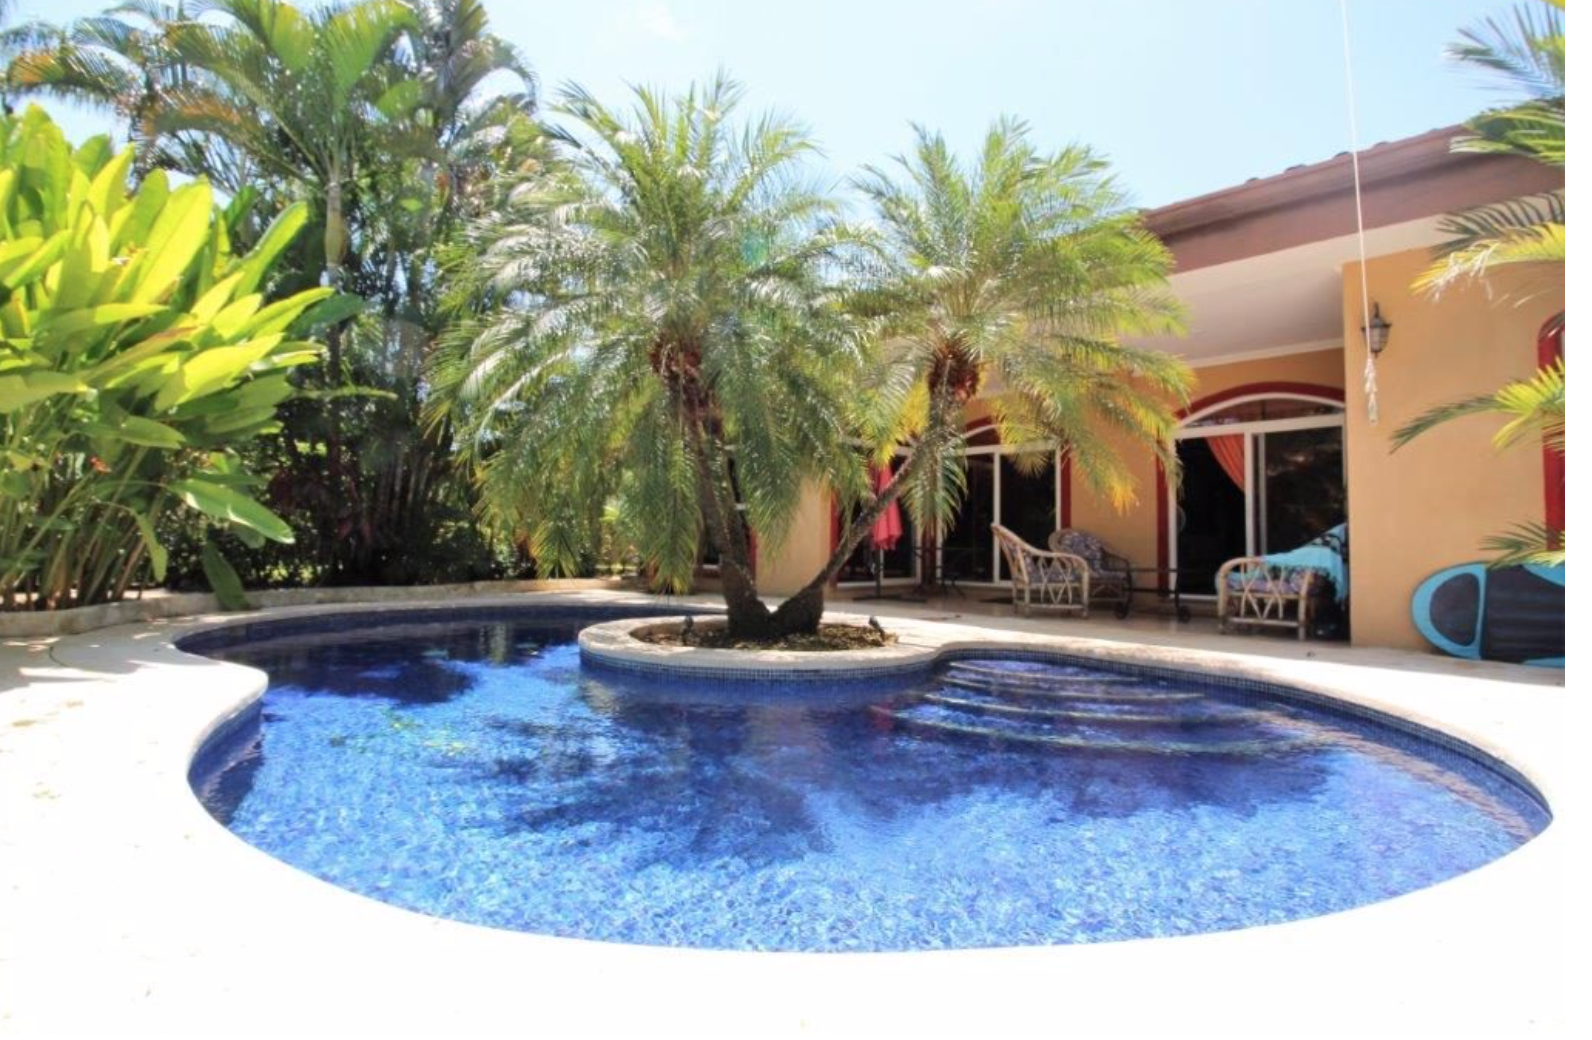 Costa del Sol – Gated Community – 3 Bedroom 3 Bath Home with Private Pool